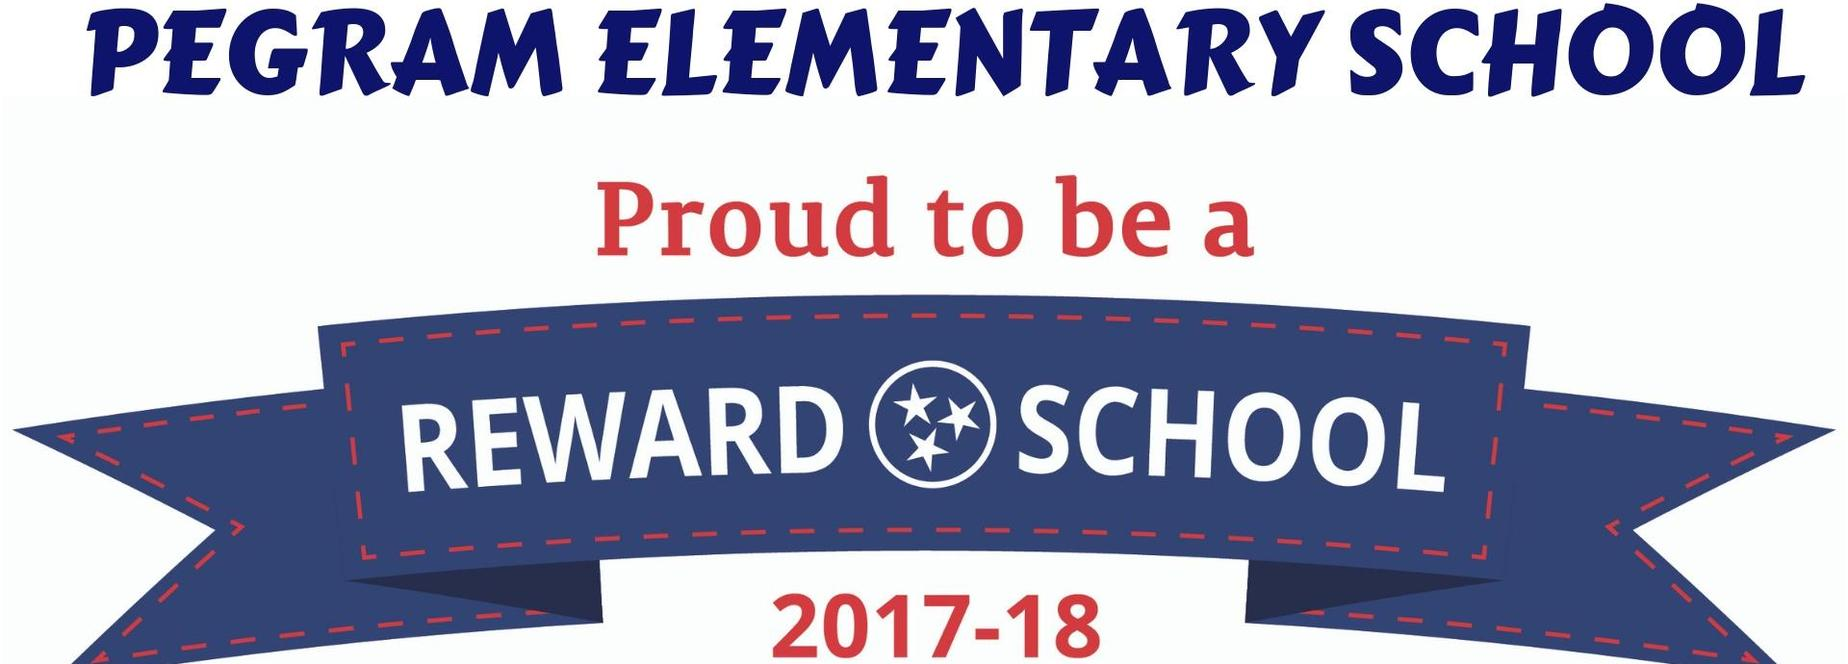 Pegram Elementary School was named a 2017-2018 Reward School.